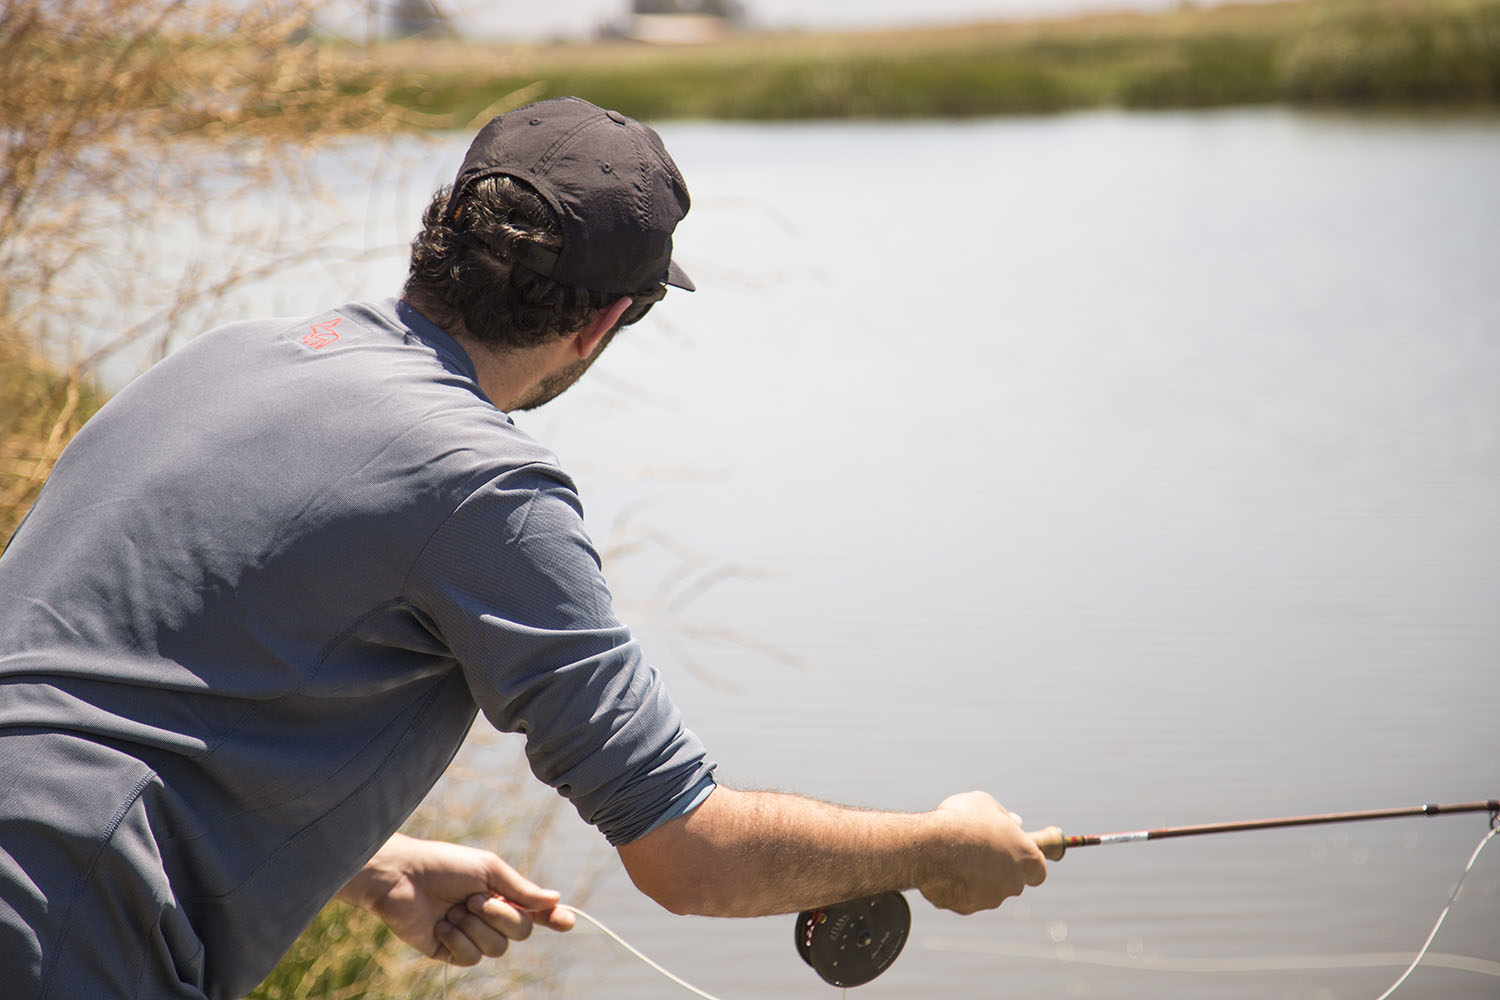 A Day At Leland Fly Fishing Ranch Huckberry